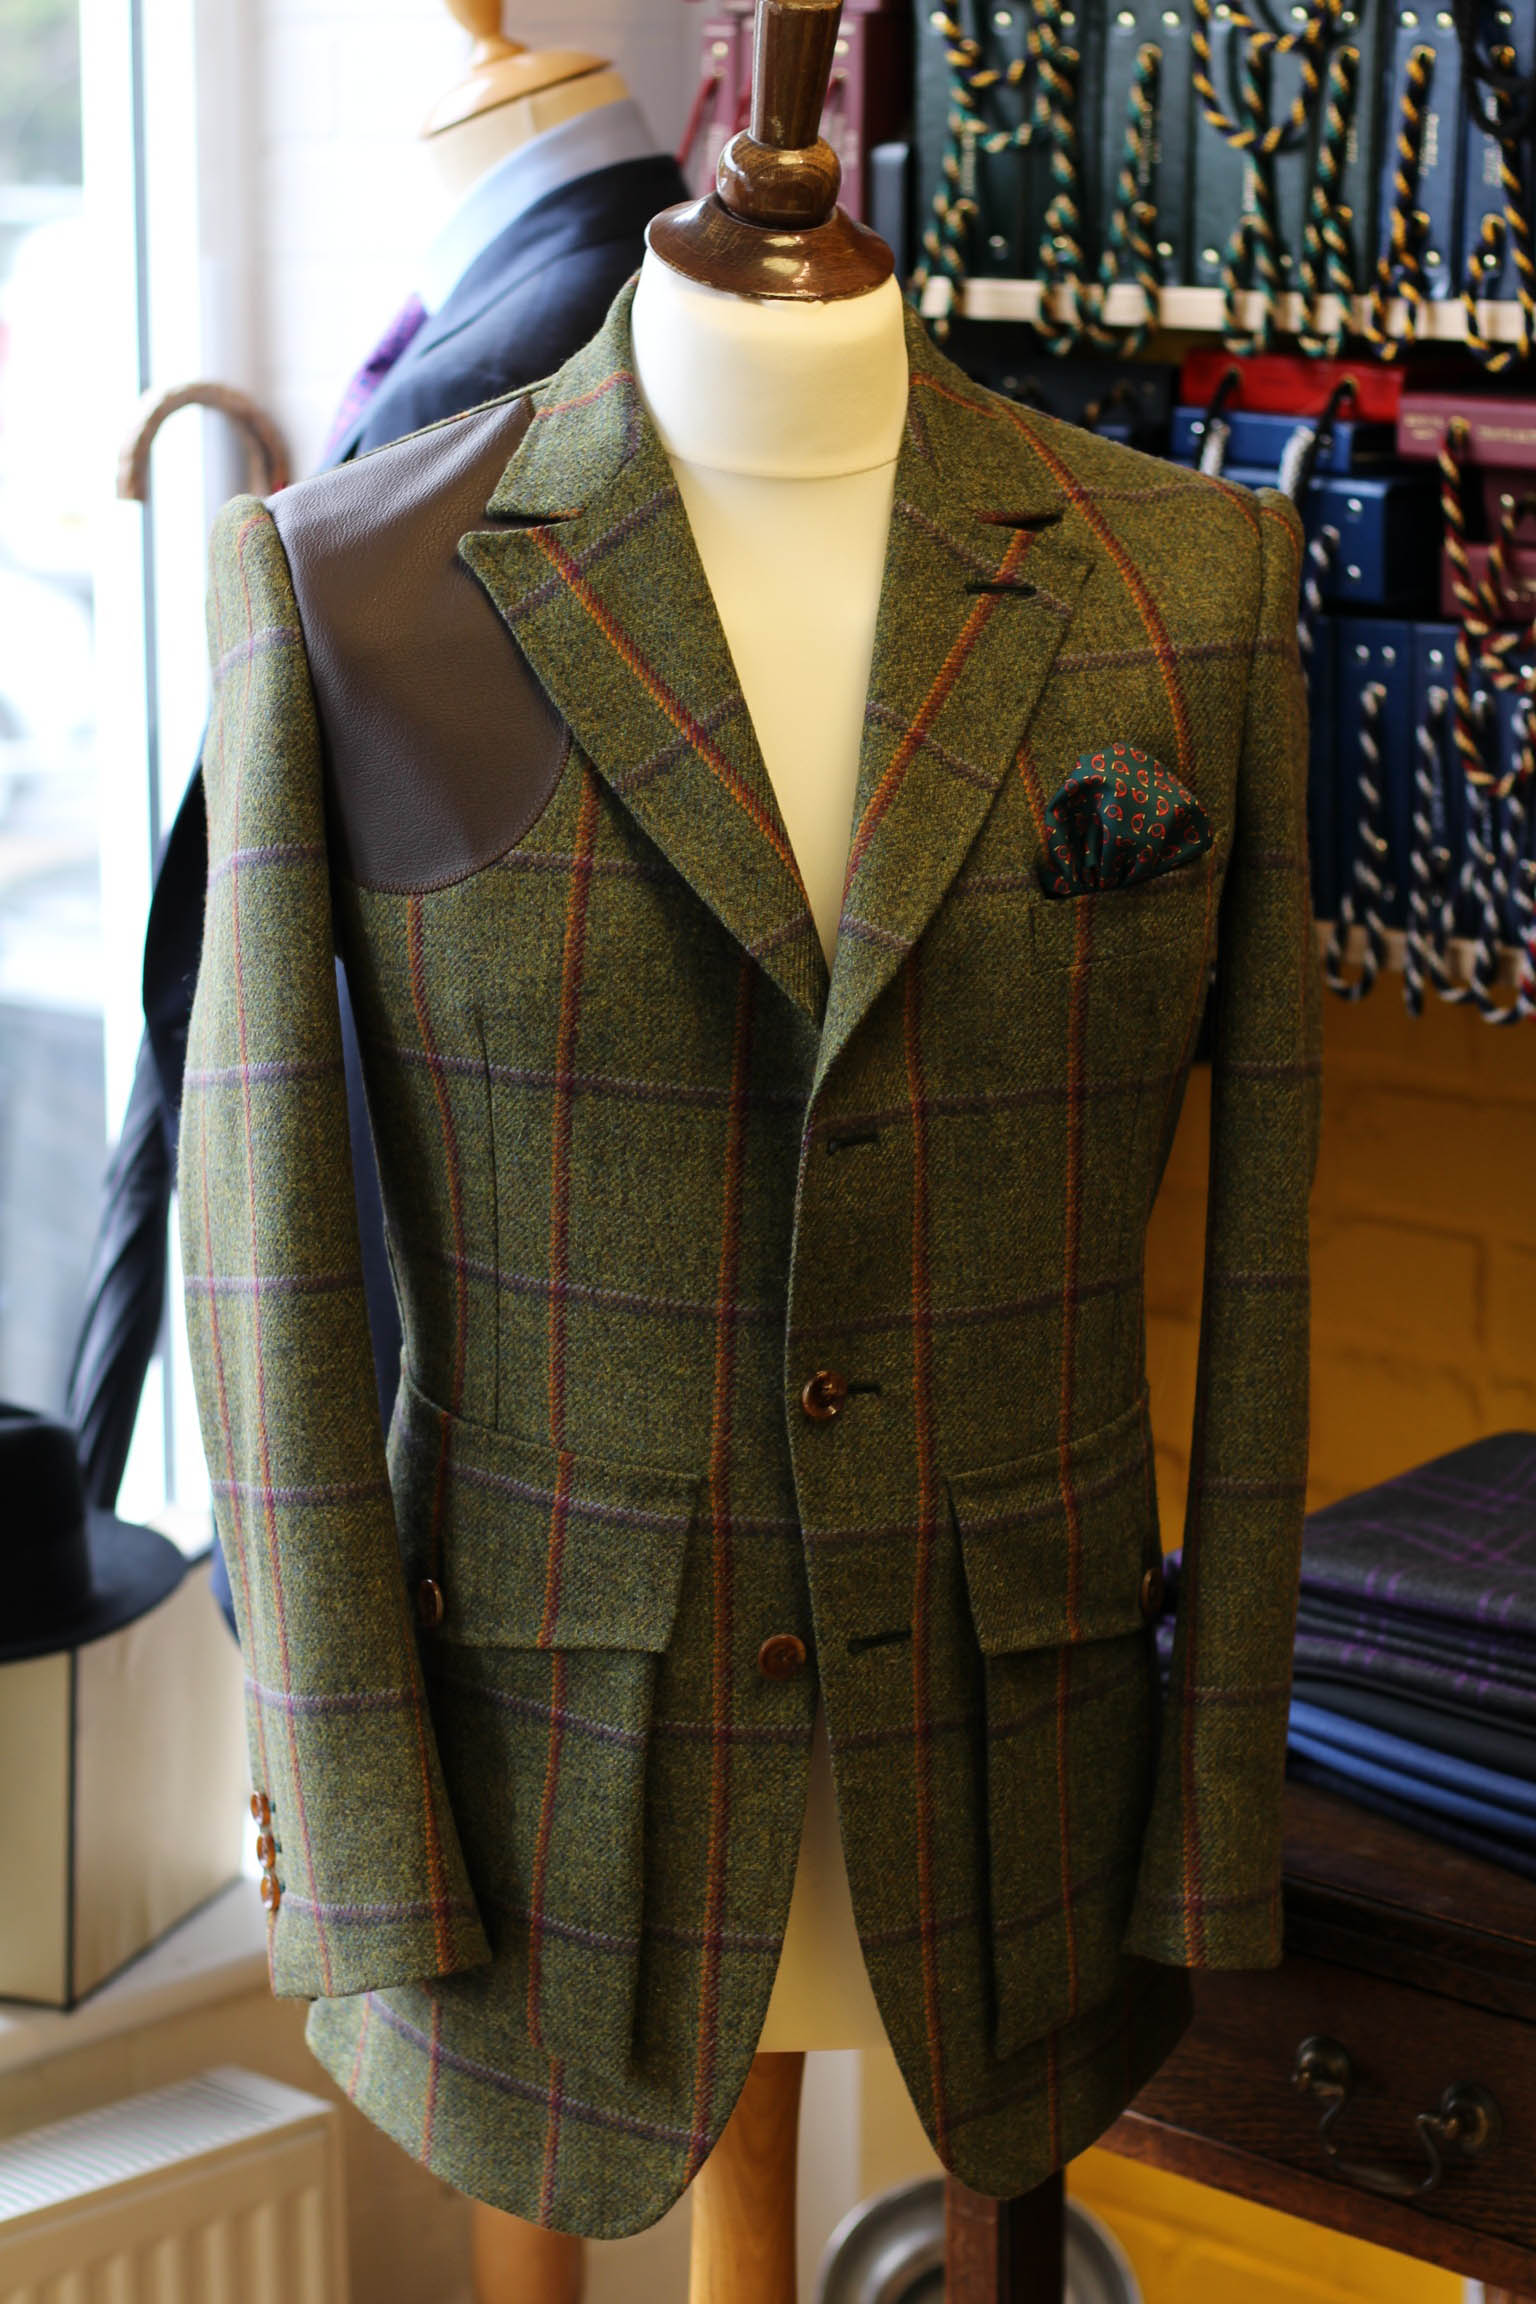 Bespoke shooting suits